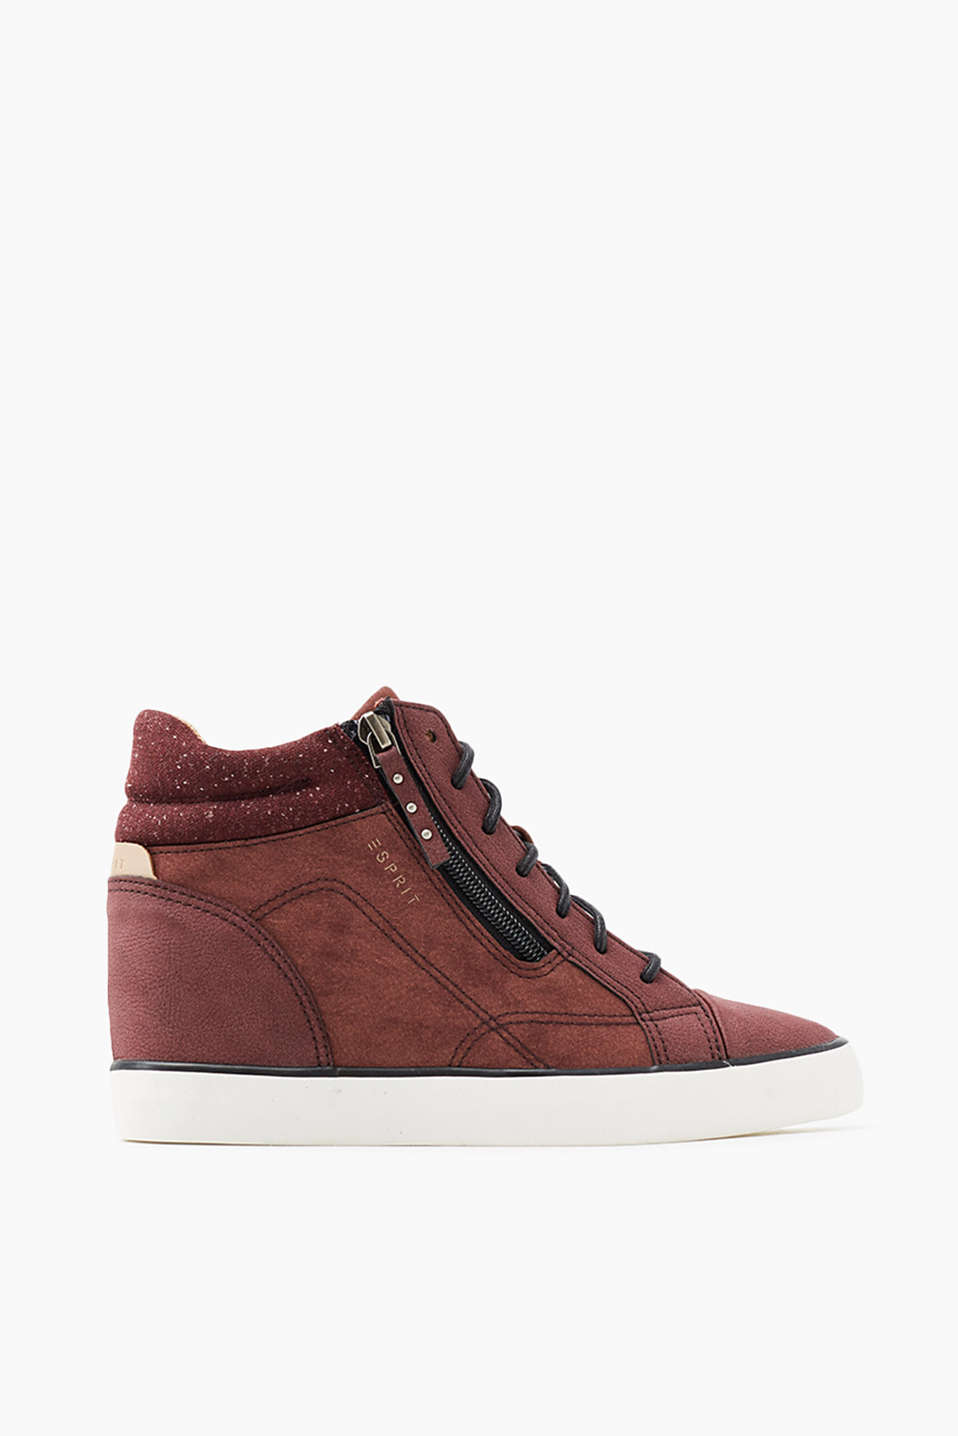 A modern street style classic! These trainers with an integrated wedge heel are an urban eye-catcher